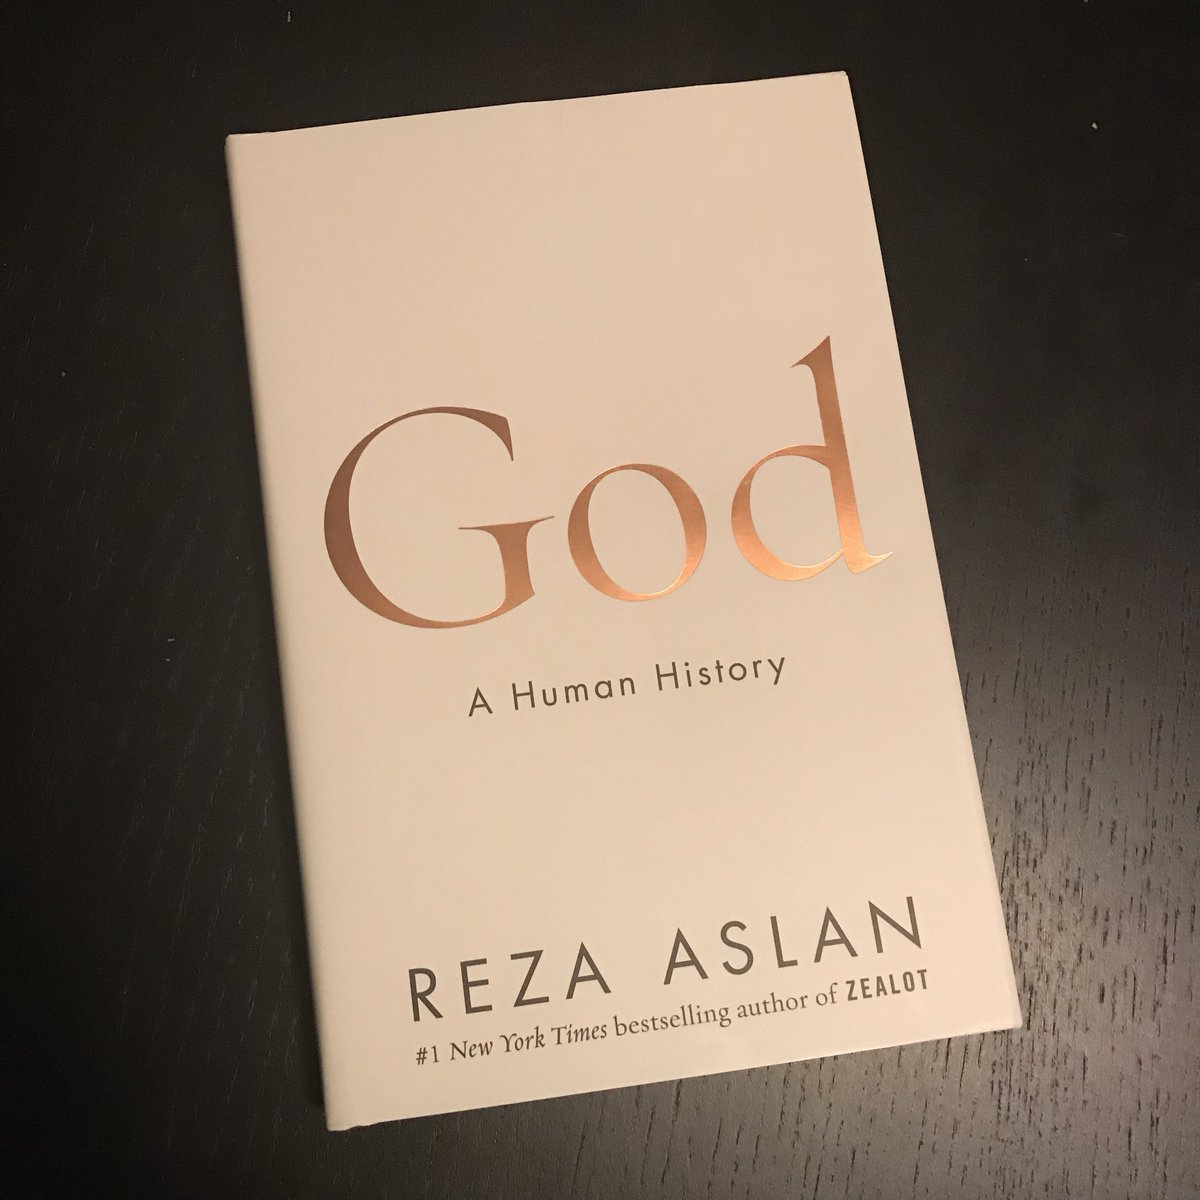 God: A Human History – a rescue attempt by Reza Aslan, The Freethinker, 23 November 2017